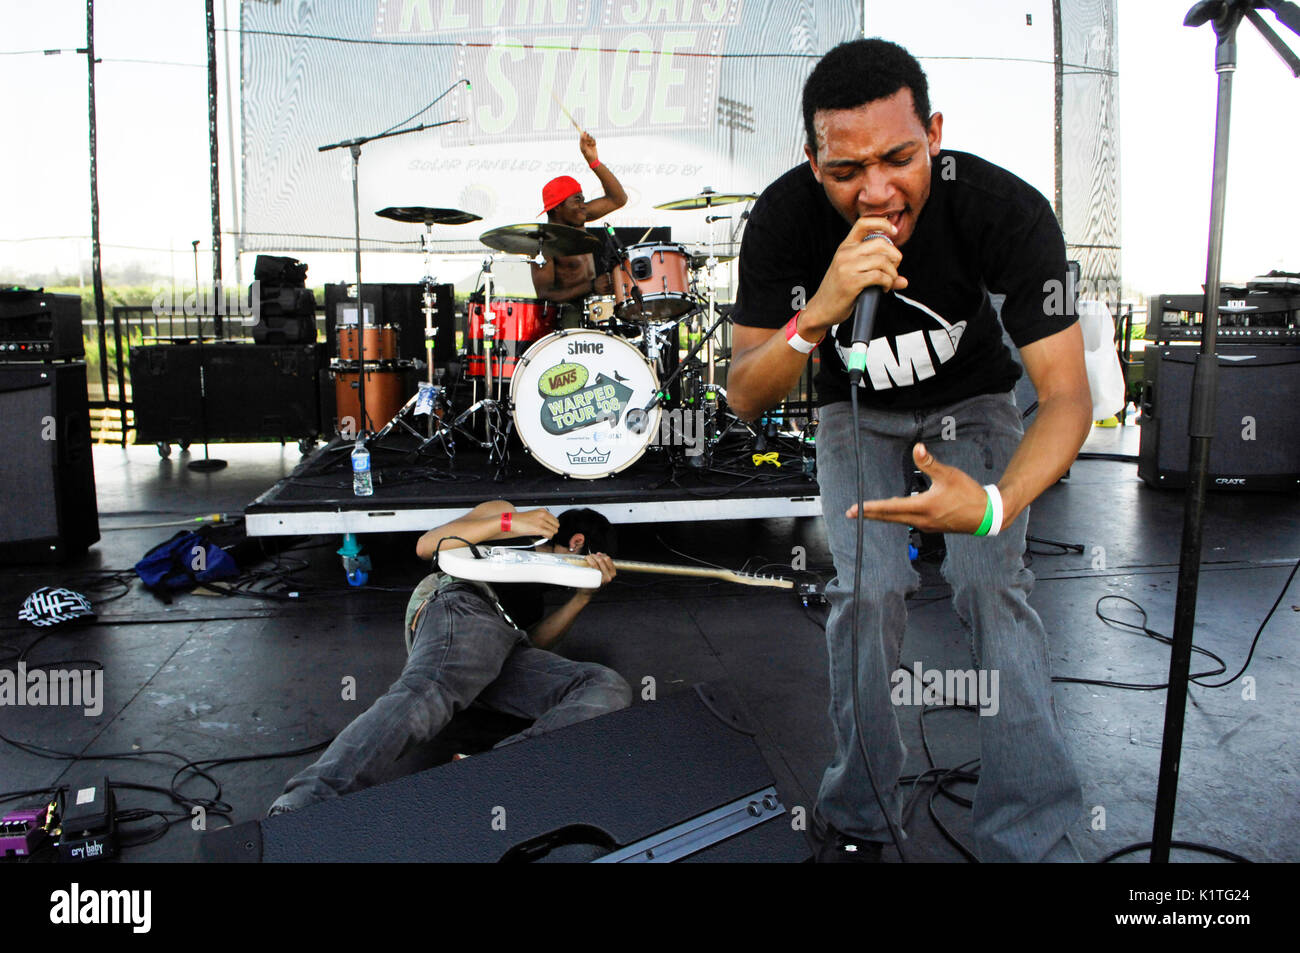 Mulato performing 2008 Vans Warped Tour Pomona Fairgrounds Pomona. - Stock Image